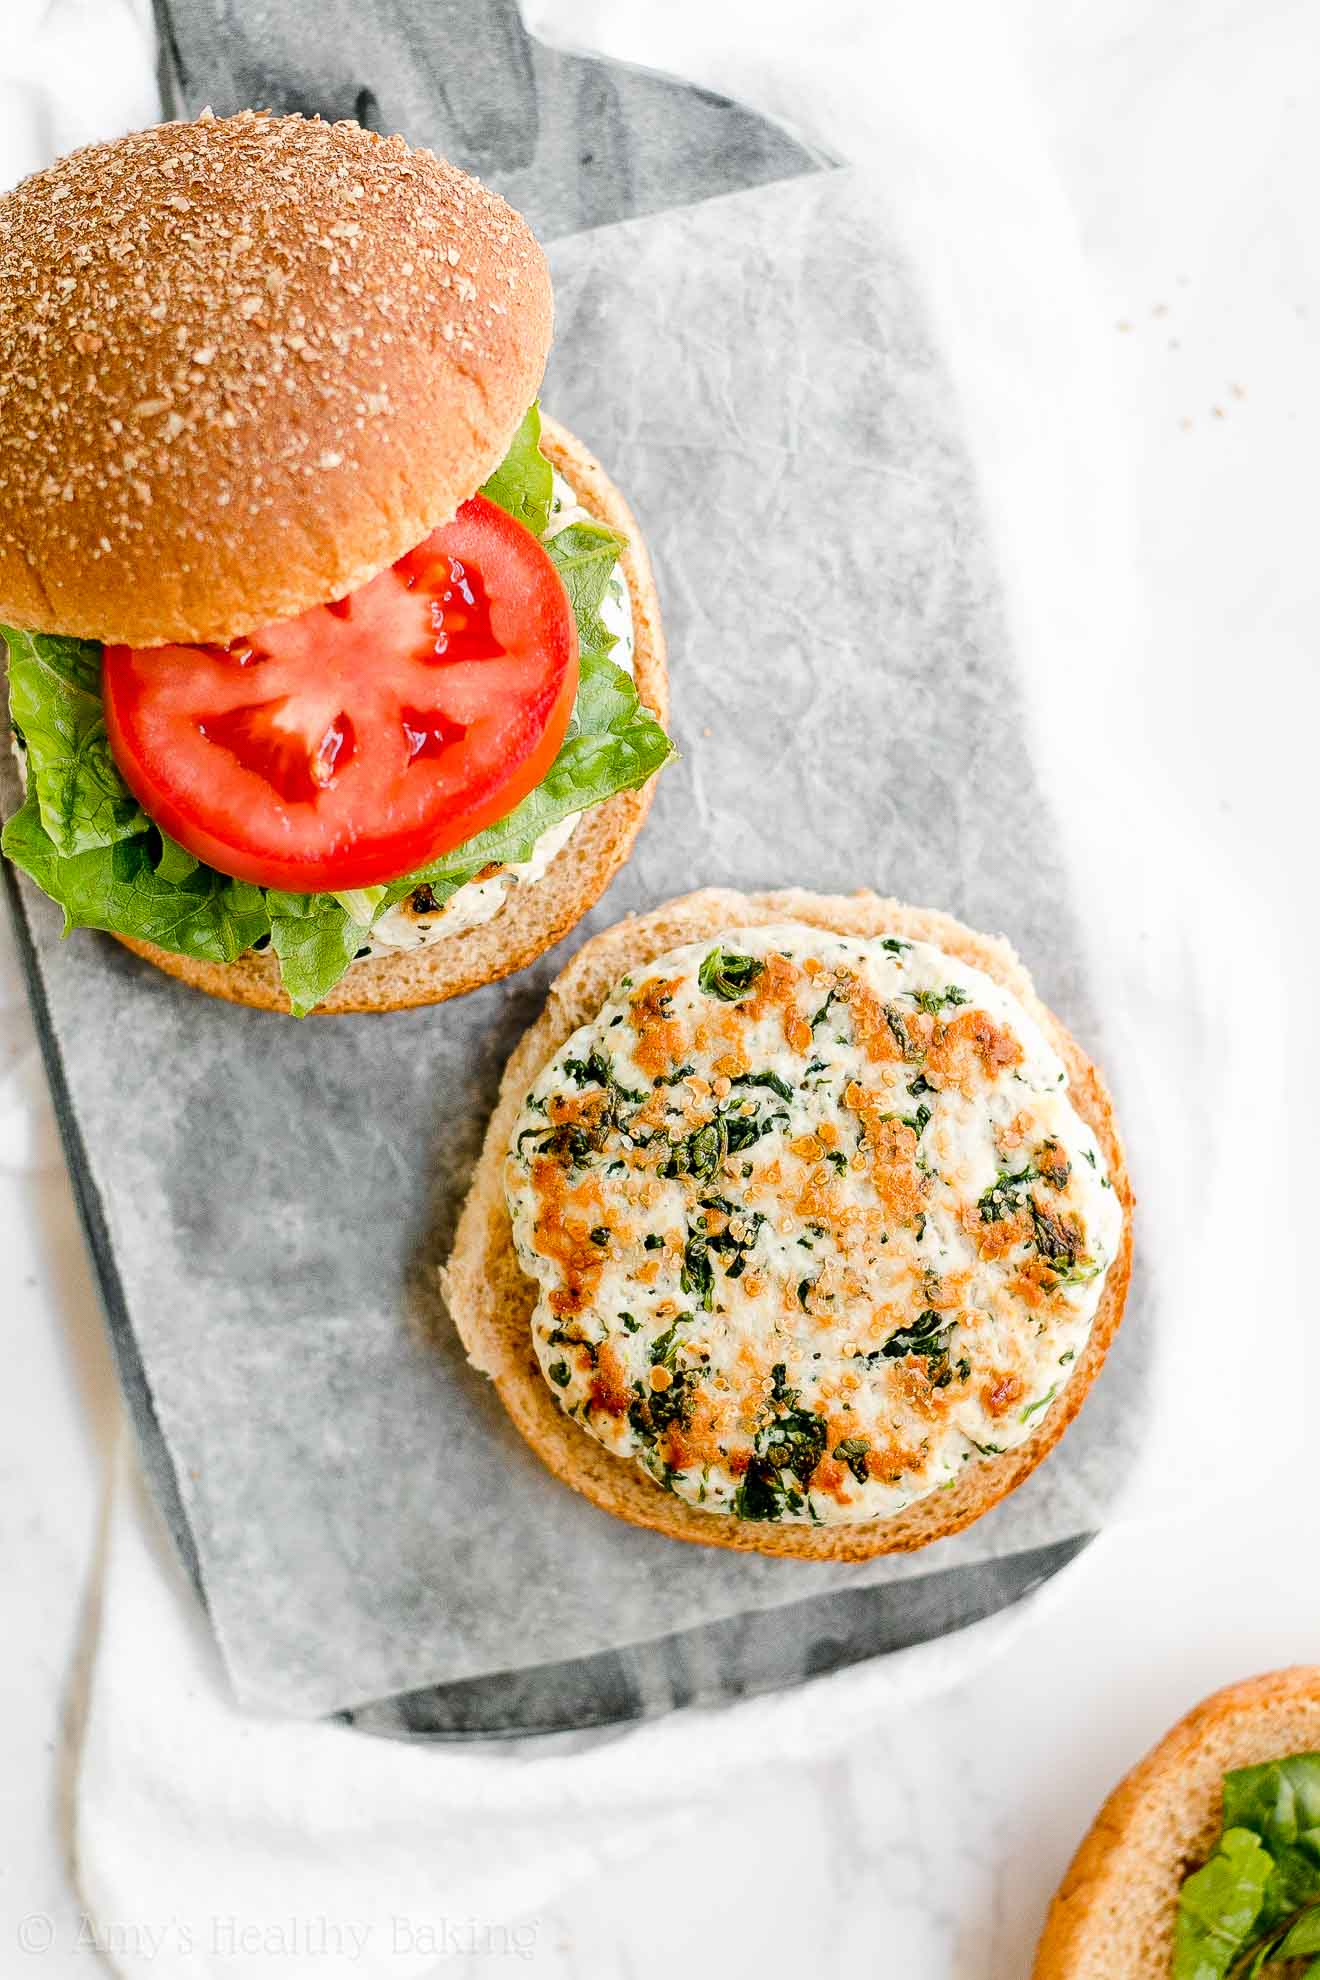 ULTIMATE Healthy Turkey Burgers with weight watchers points